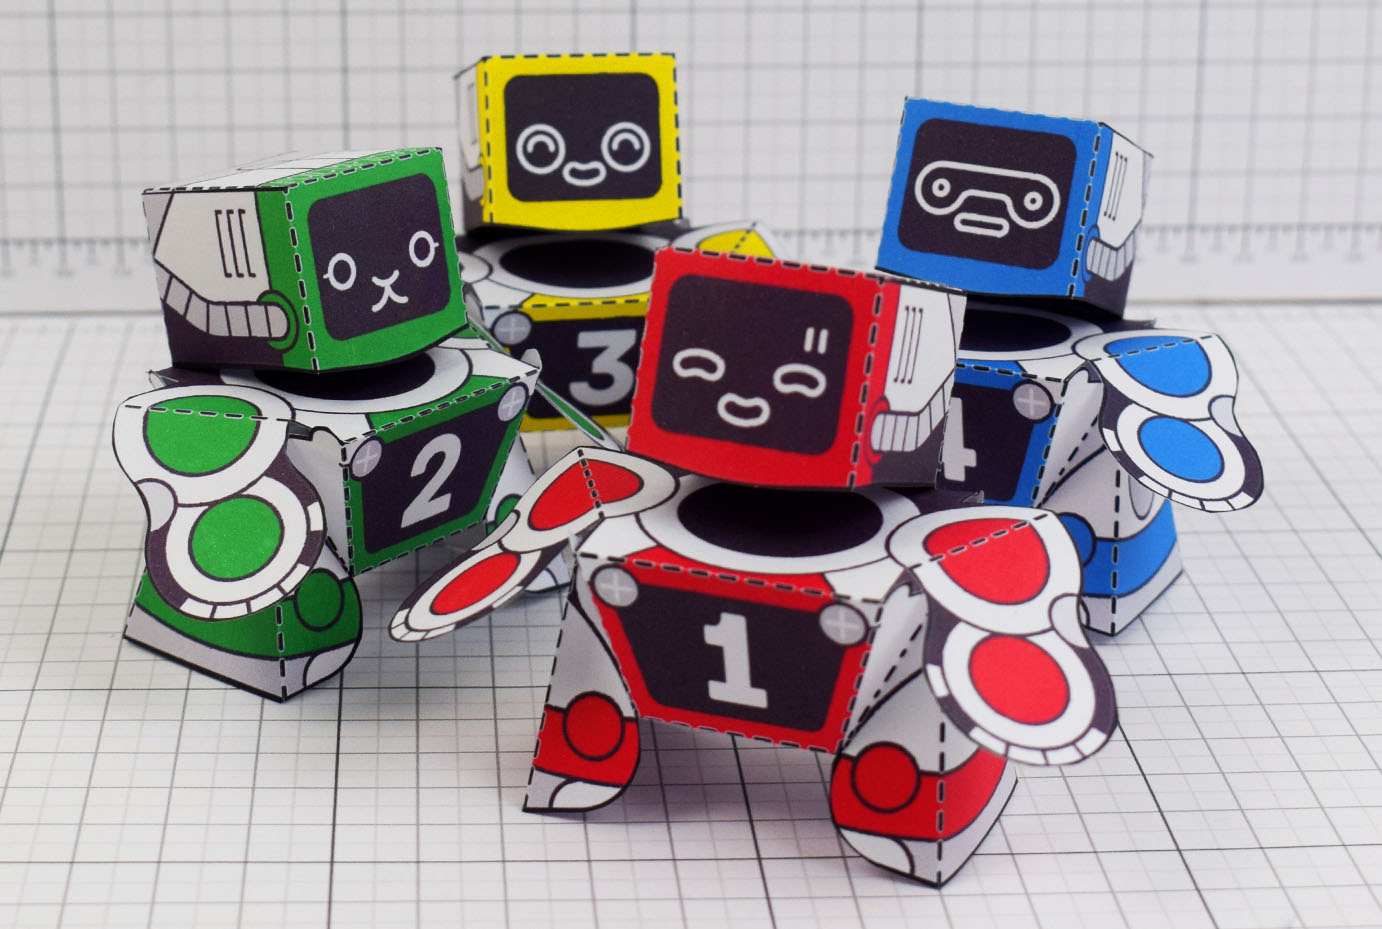 PTI Patreon 2018 Microbots Paper Toy Photo - Main